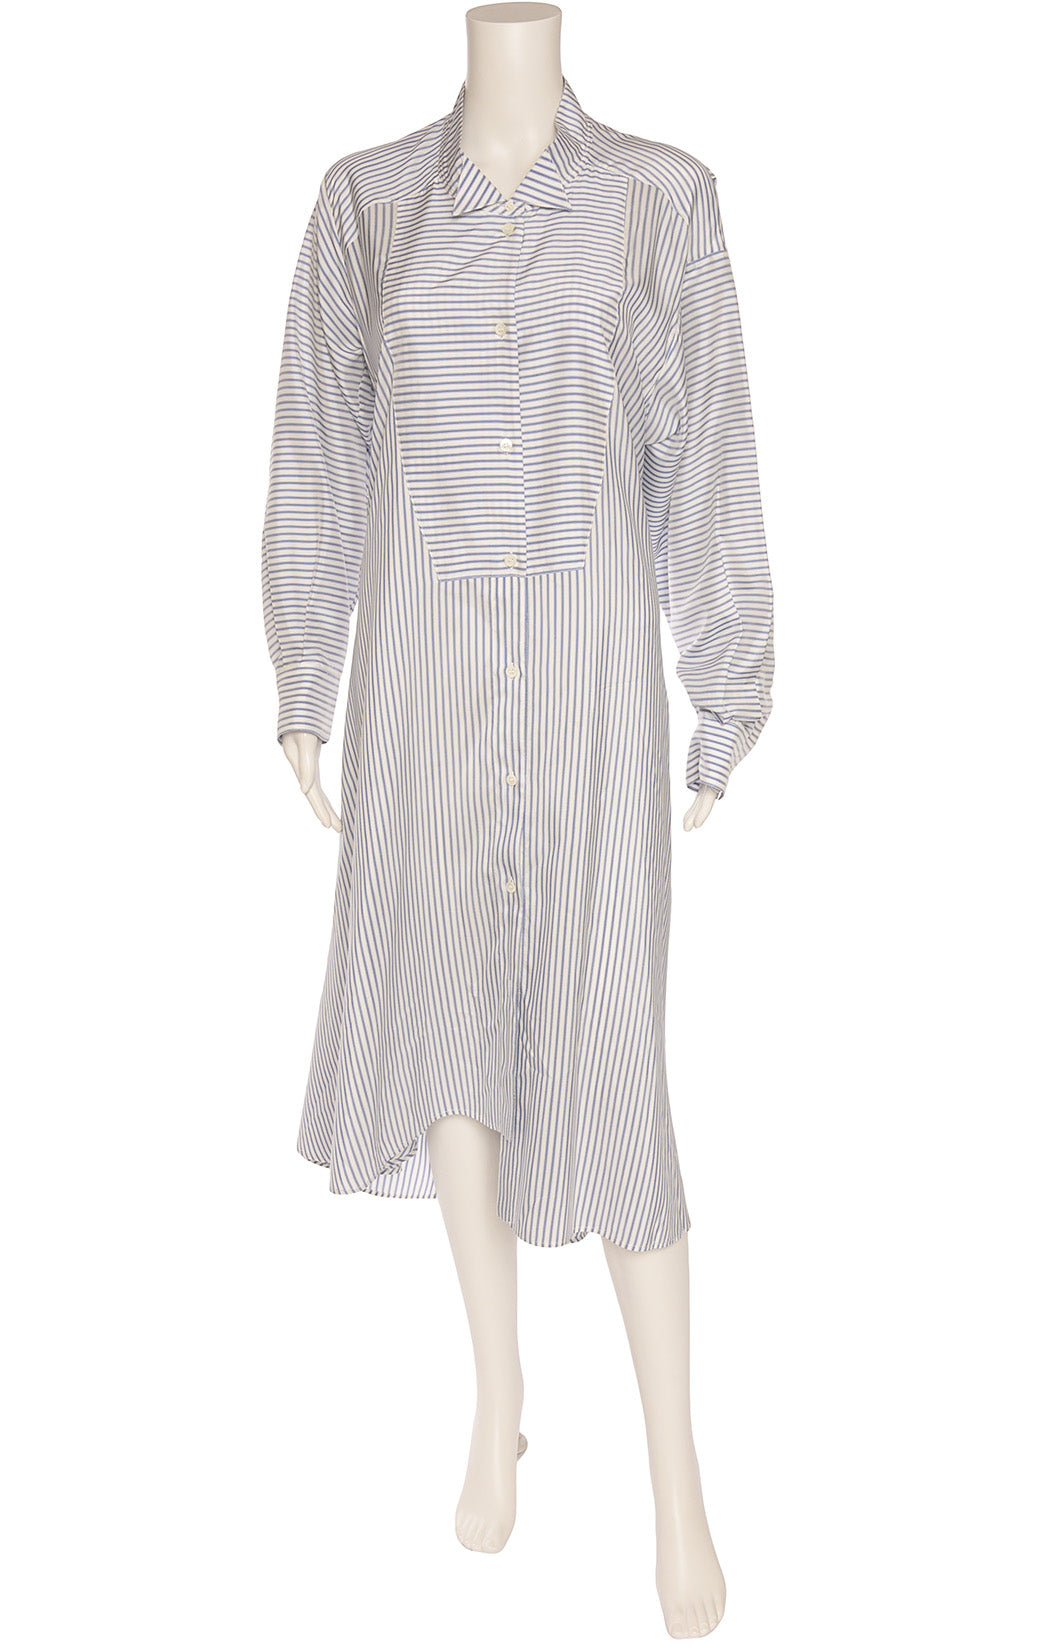 Front view of LOEWE Dress Size: FR 36 (comparable to US 4 -runs big)